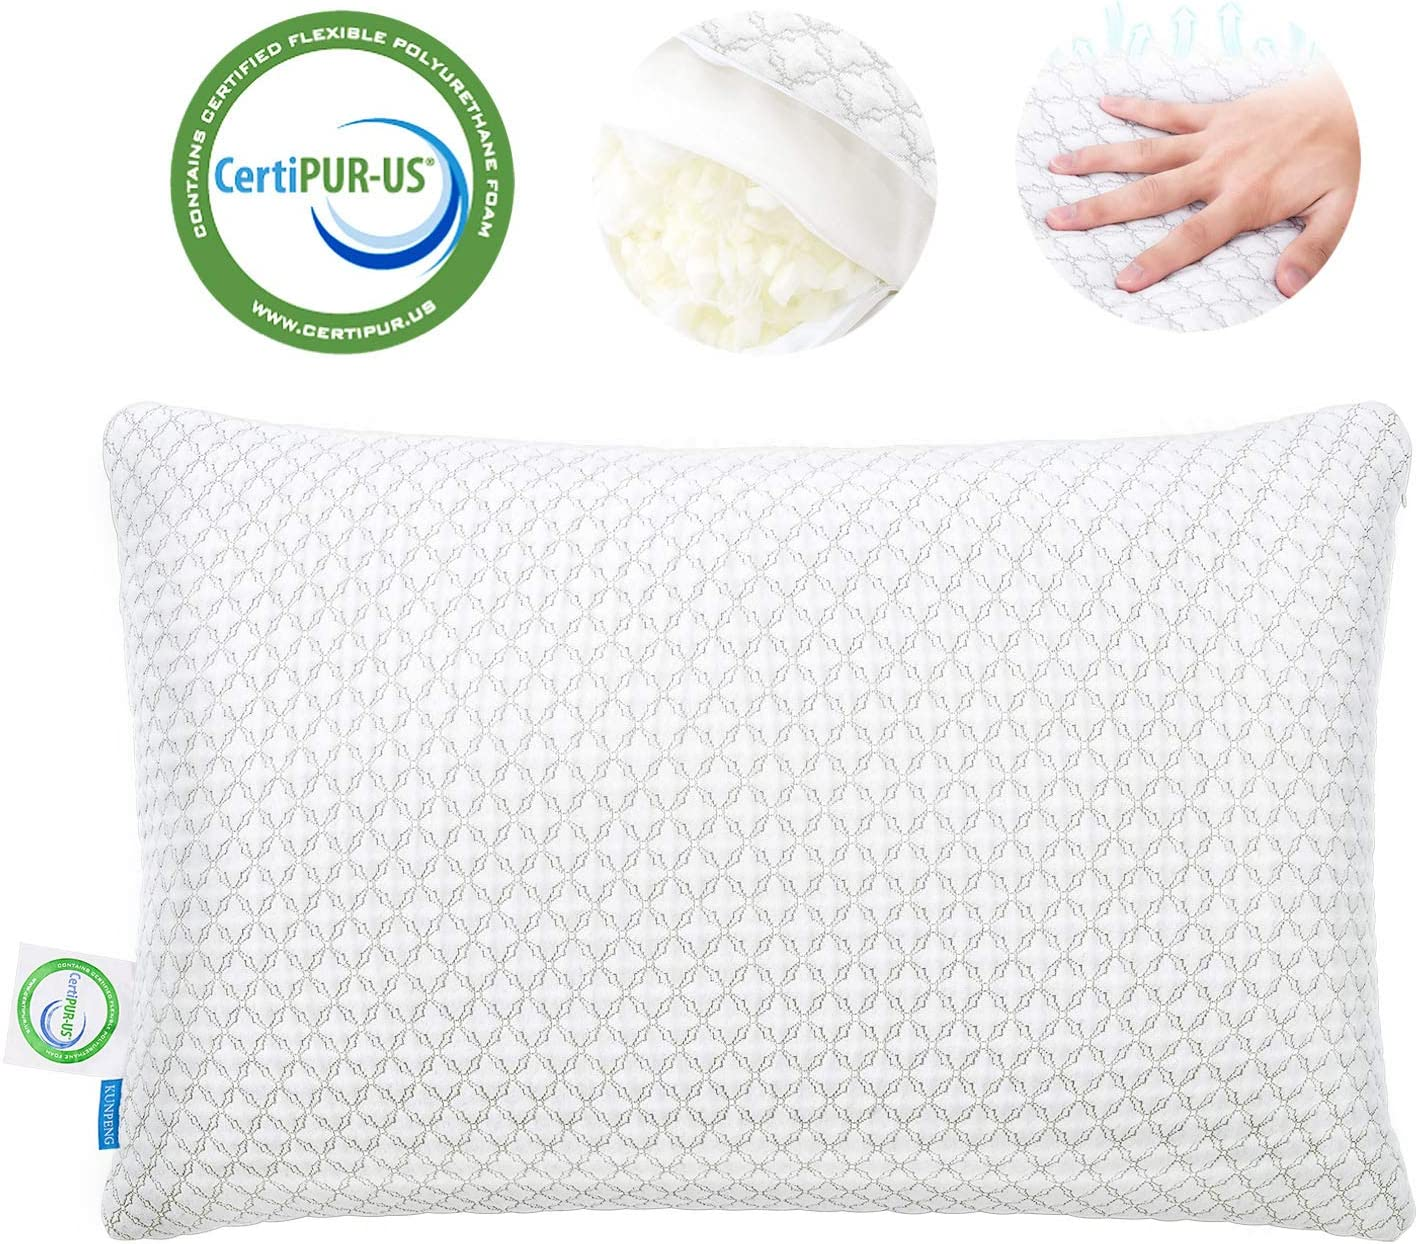 KUNPENG Shredded Memory Foam Pillows for Sleeping - Cooling Bed Pillow Hypoallergenic with Premium Washable Cover for Back Stomach Side Sleepers Firm Soft Adjustable - CertiPUR-US - King Size